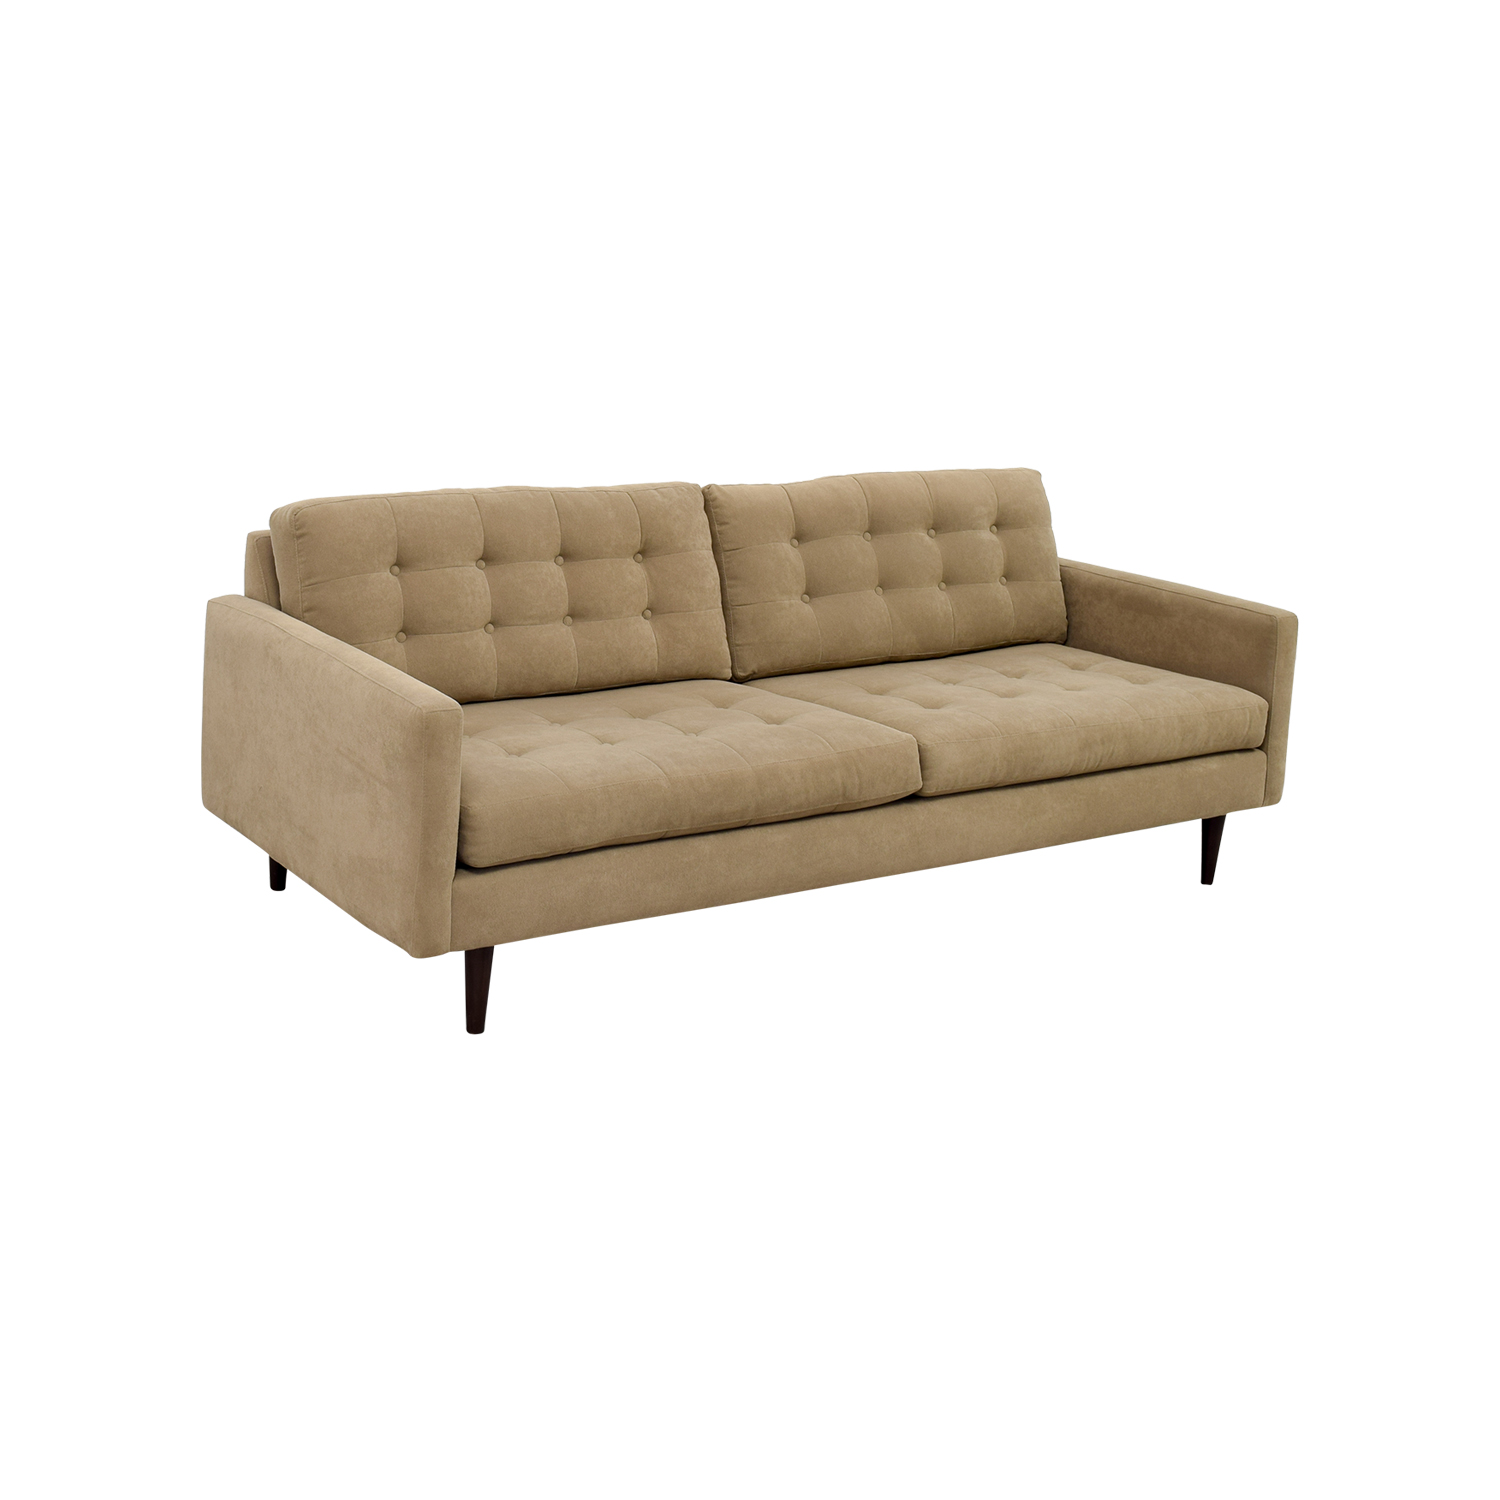 53% OFF Furniture Envy Furniture Envy Petra Khaki Tufted Sofa